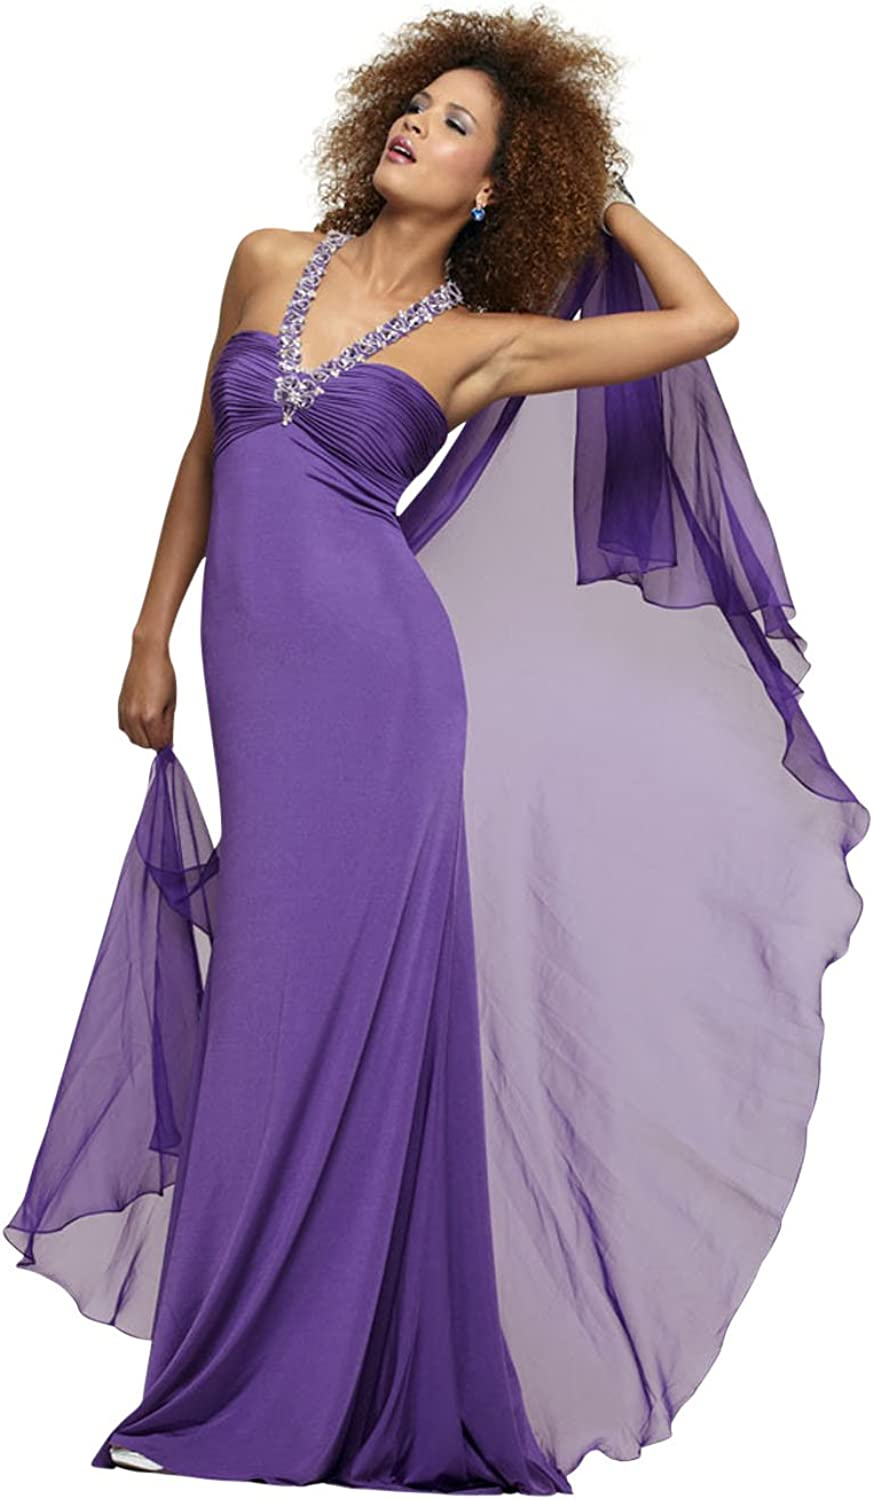 Clarisse Beaded Halter Fitted Jersey Prom Dress 2173